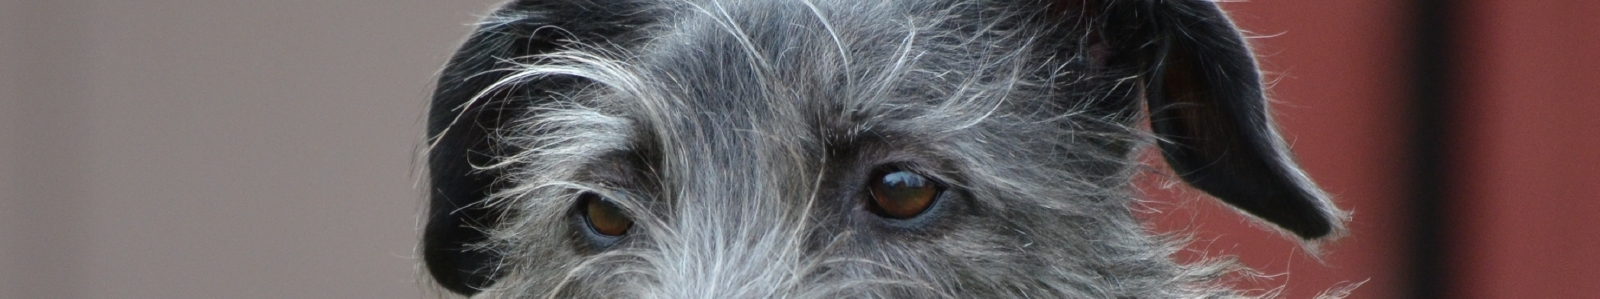 Mearcair Deerhounds, Parsons & Reptiles